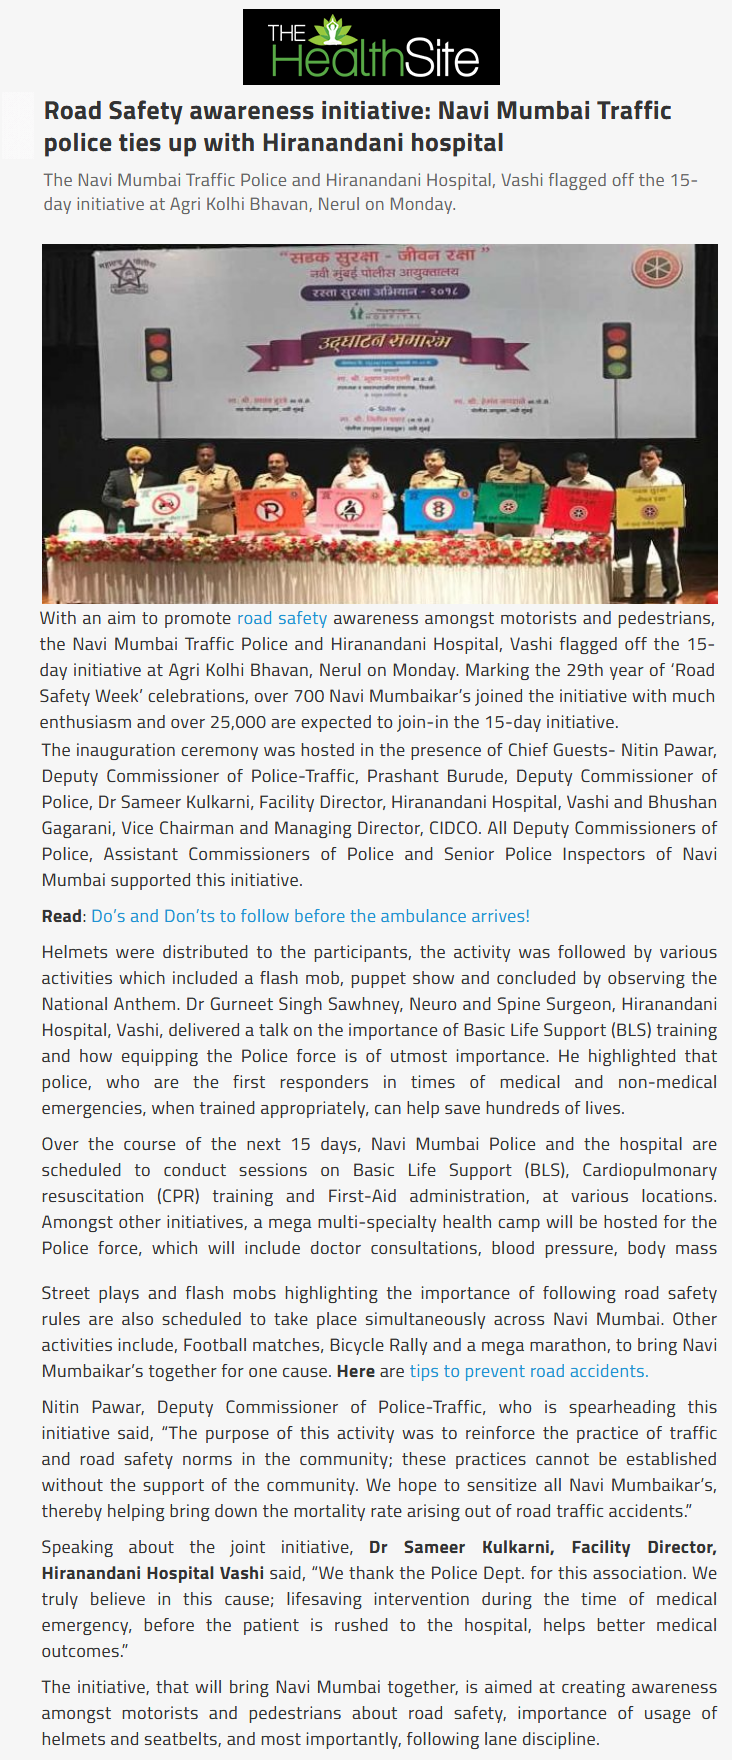 News - Road Safety awareness initiative: Navi Mumbai Traffic police ties up with Hiranandani hospital